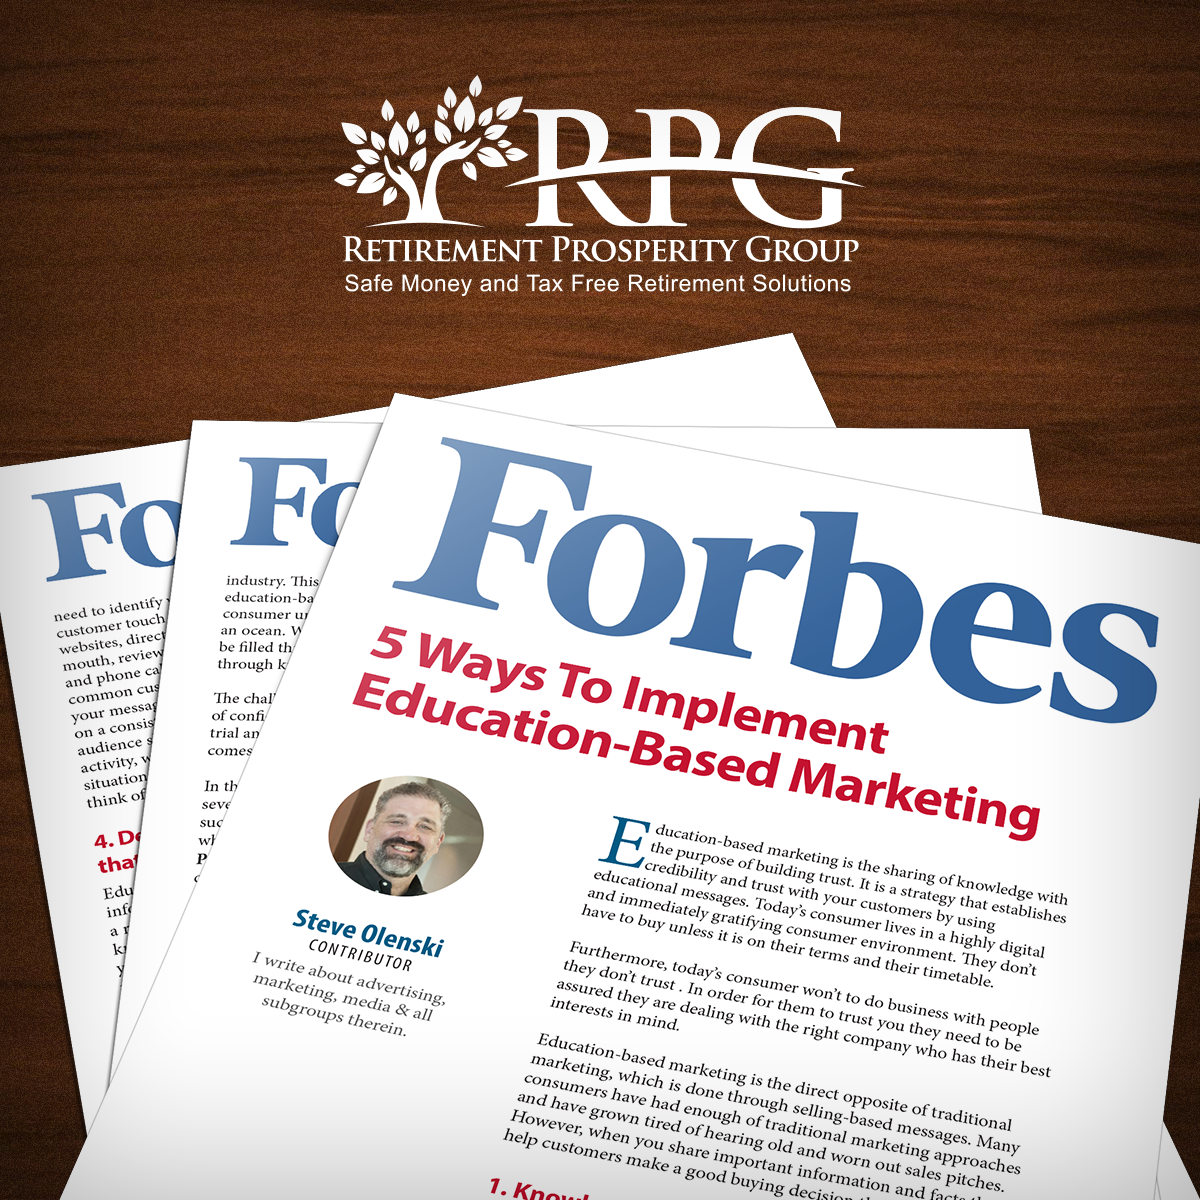 RPG in Forbes Magazine: 5 Ways To Implement Education-Based Marketing